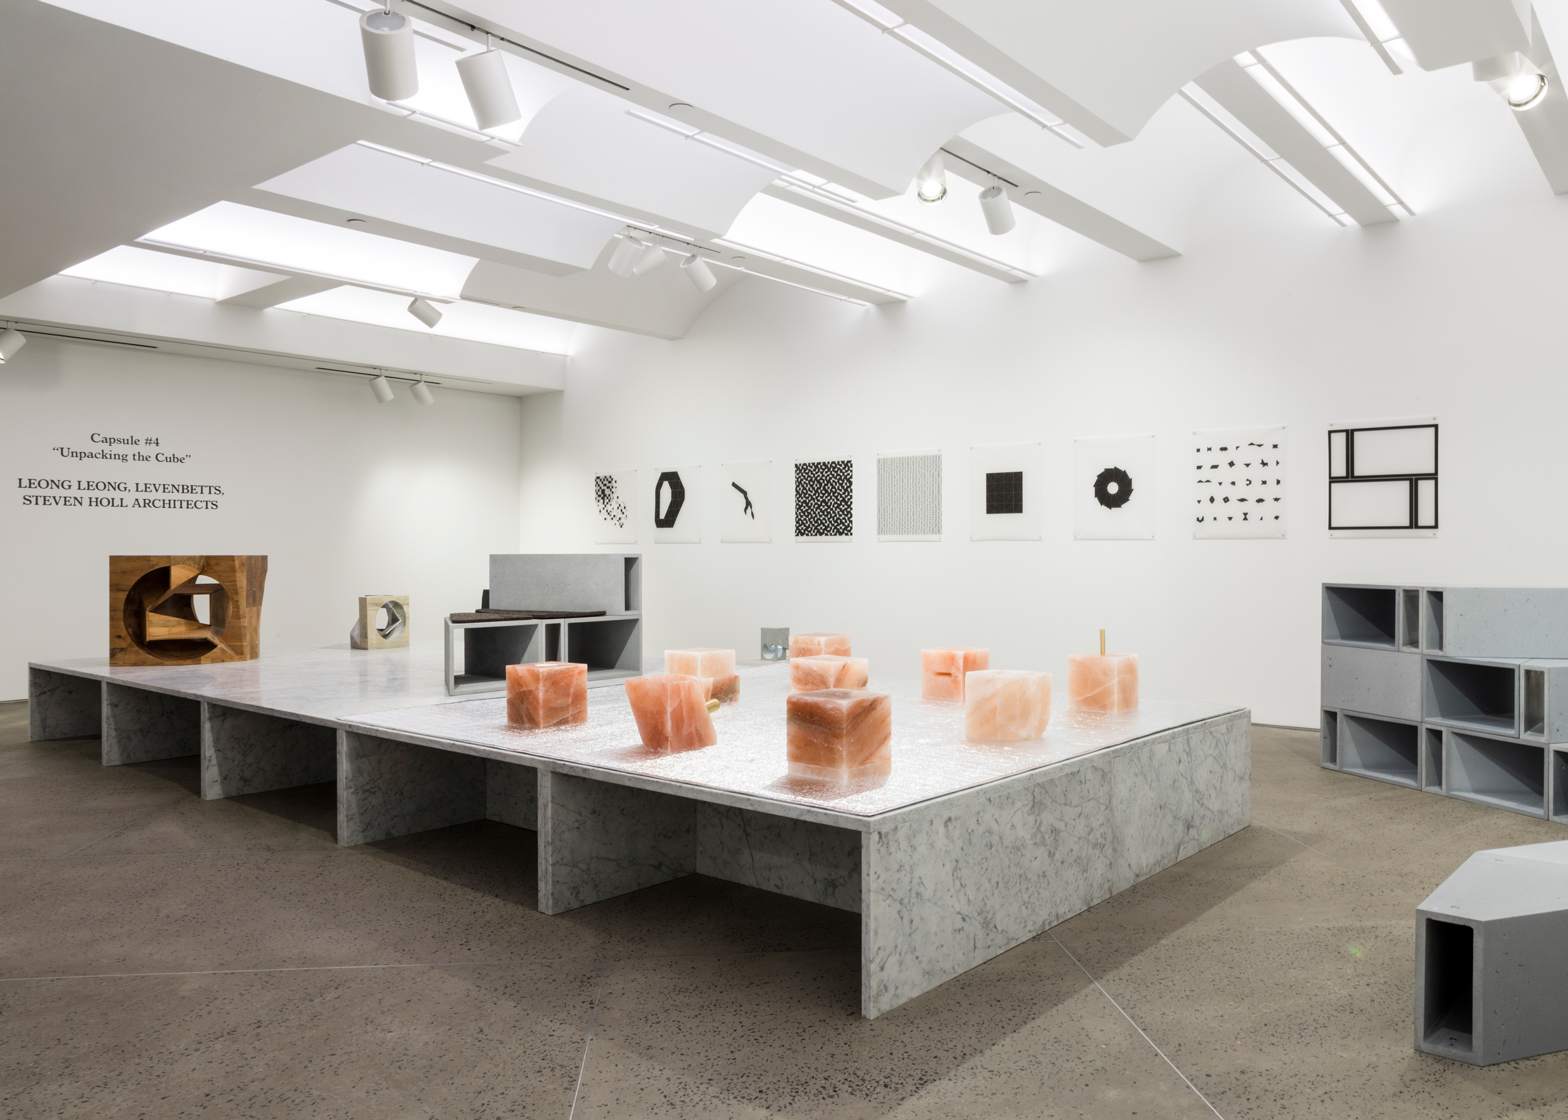 The Unpacking the Cube exhibition at New York gallery Chamber features architect-designed pieces